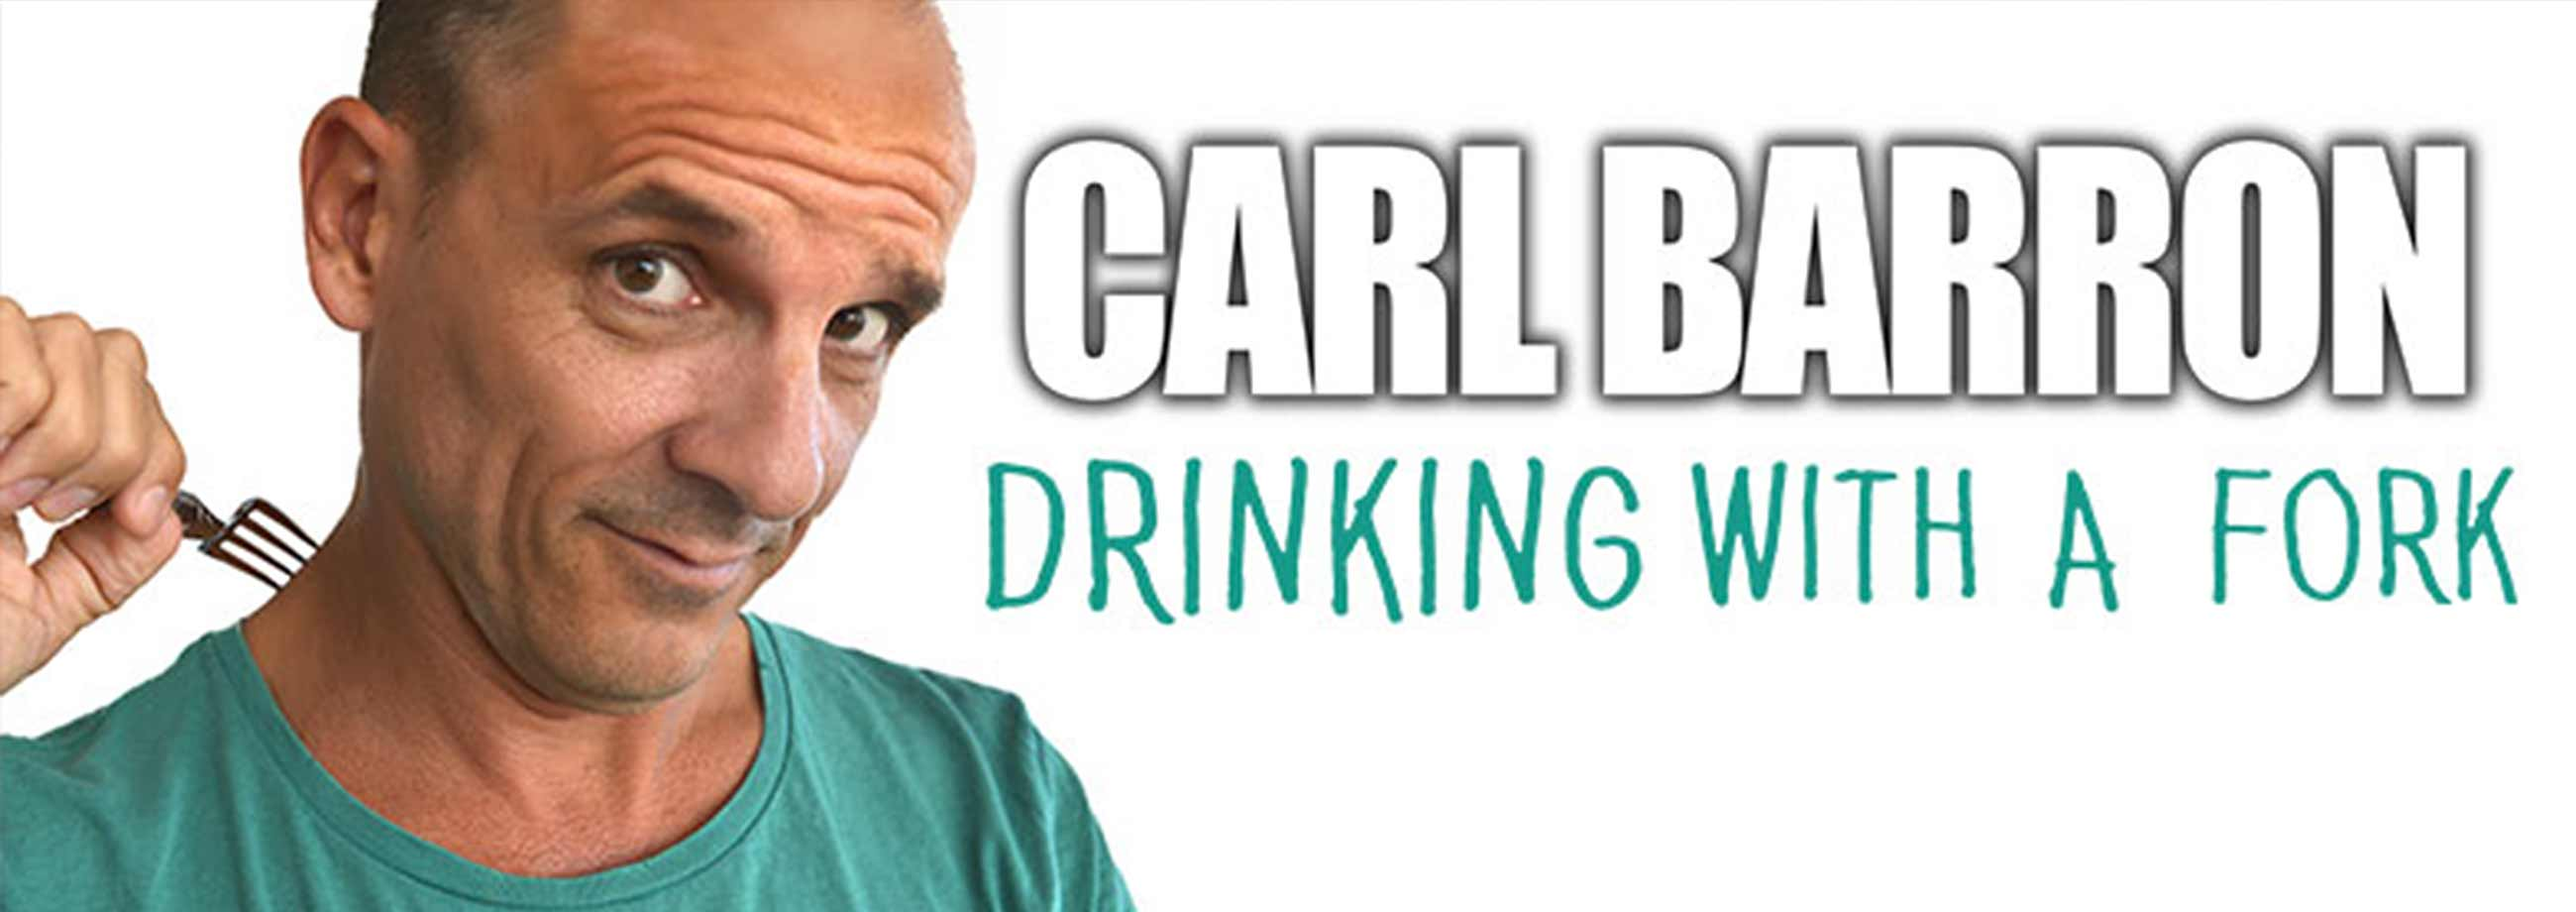 carl barron drinking with a fork promotional poster